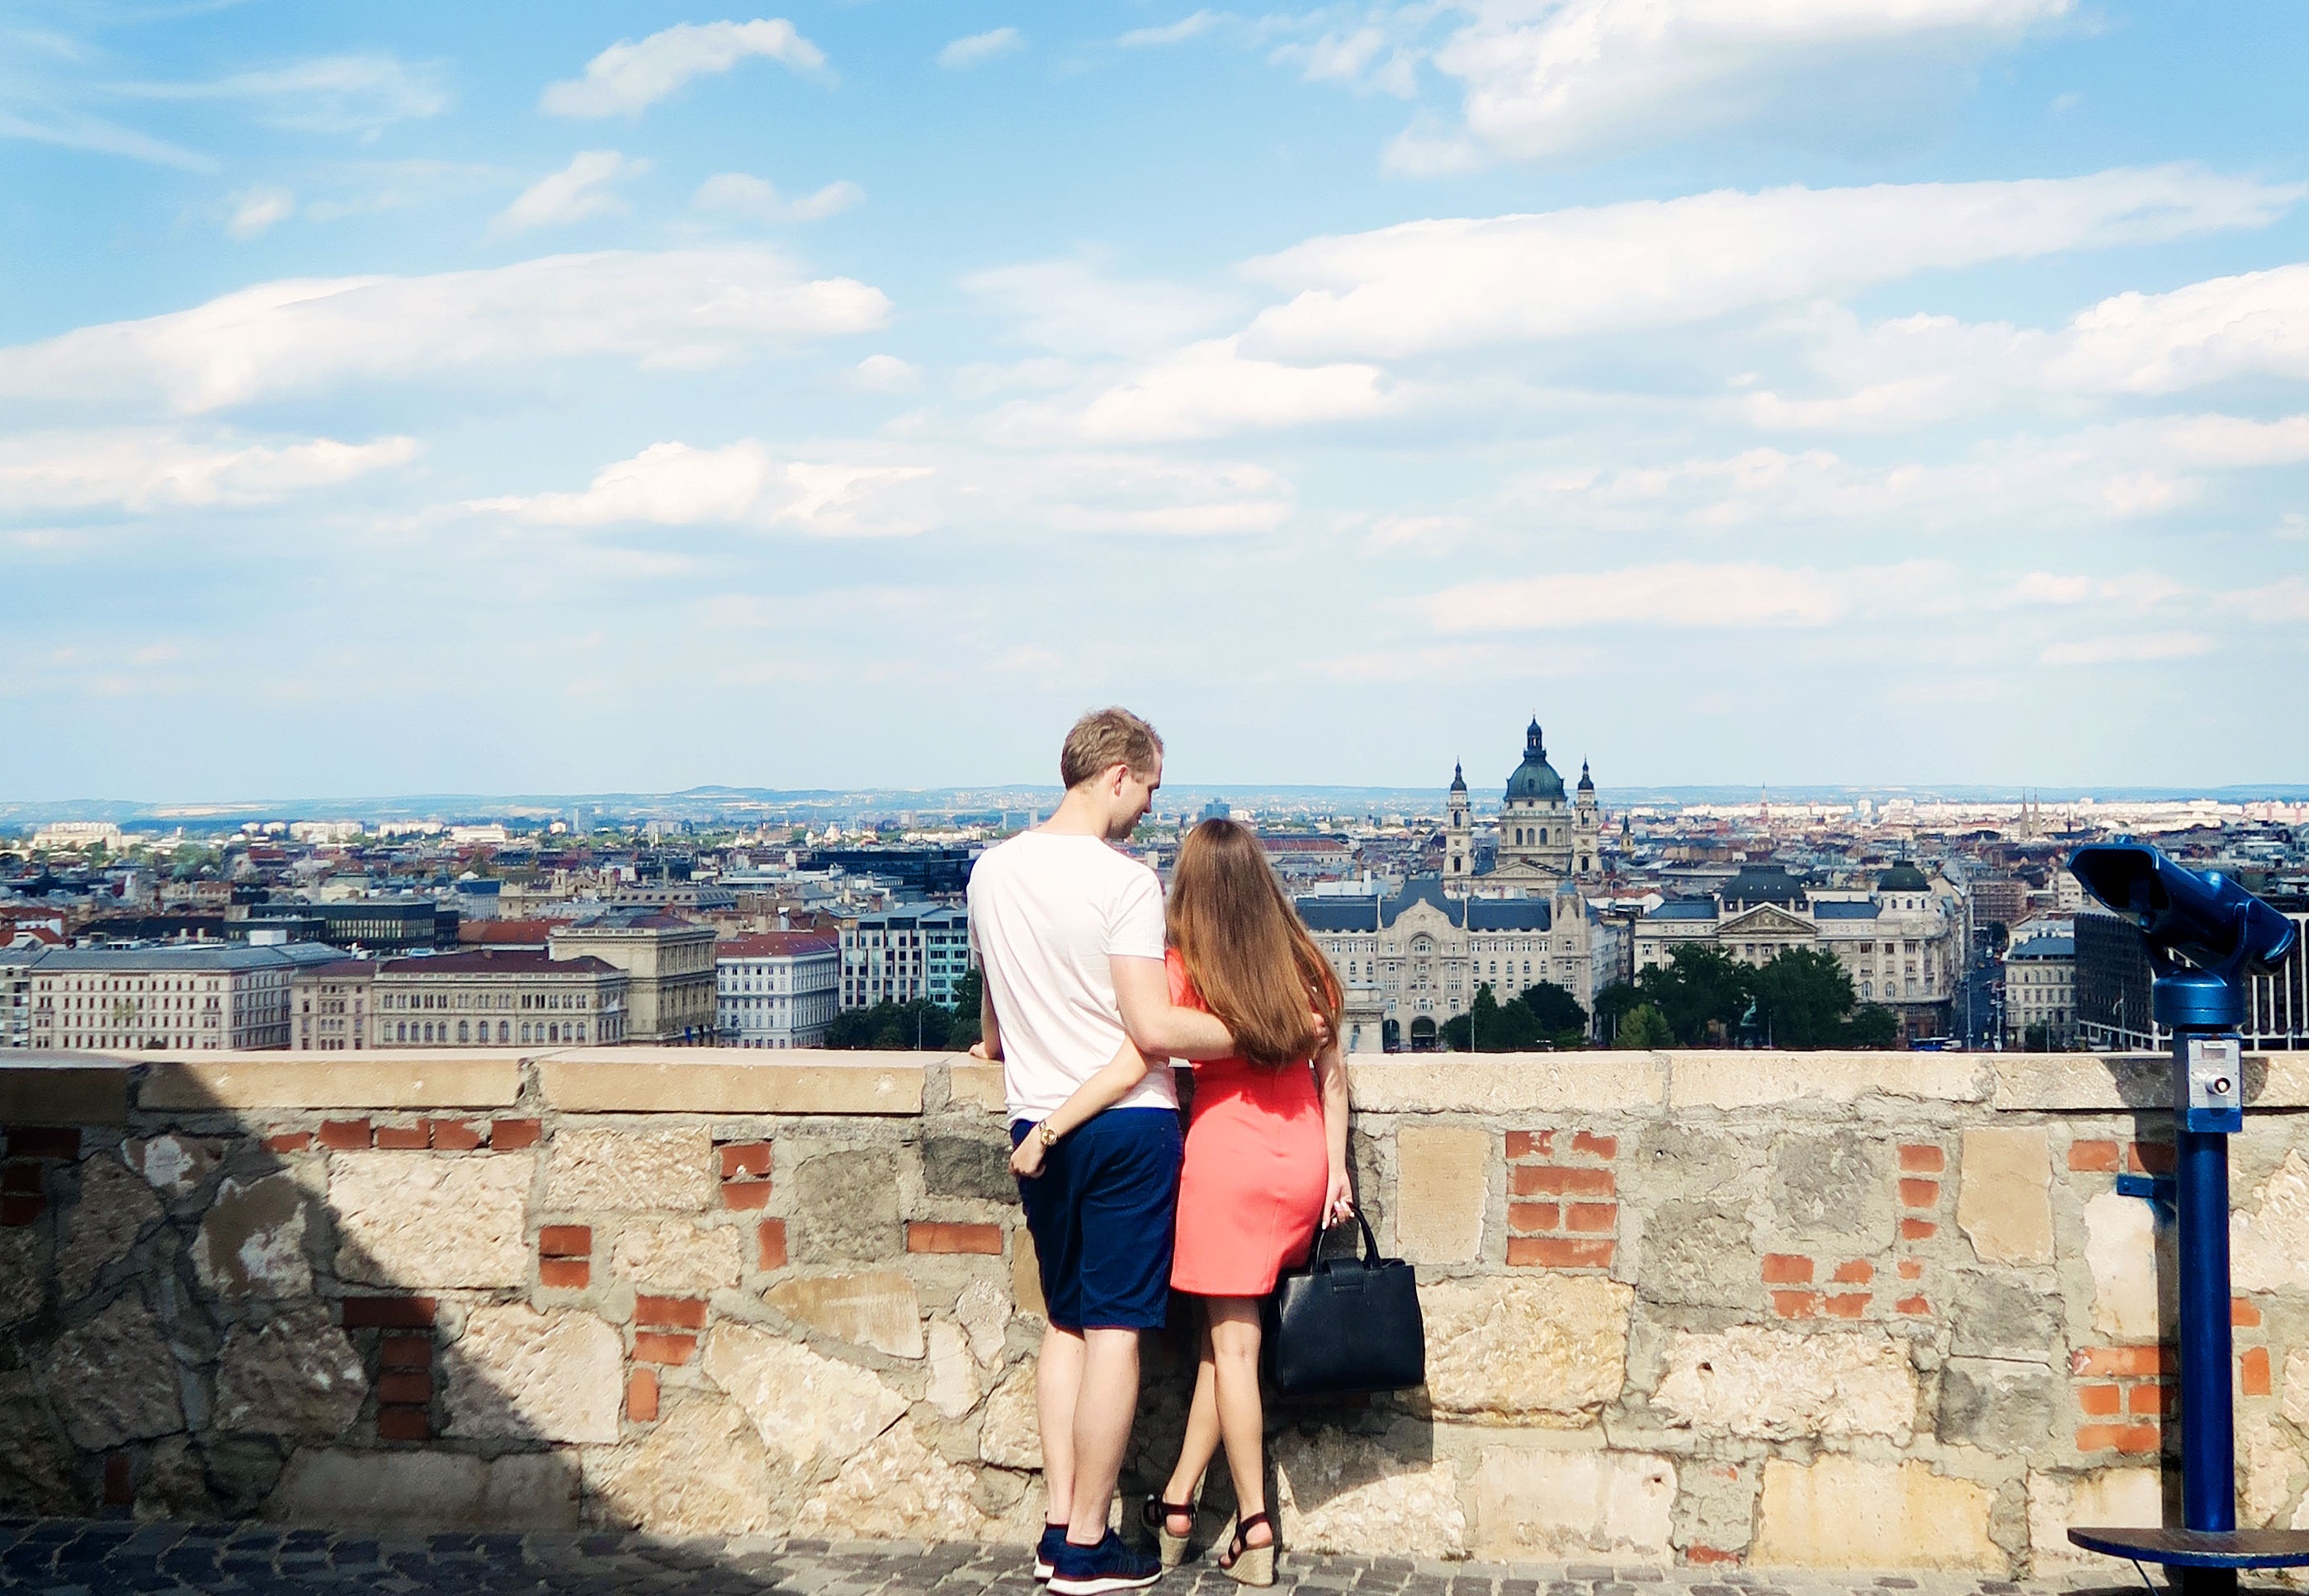 Young couple in love. Budapest backdrop